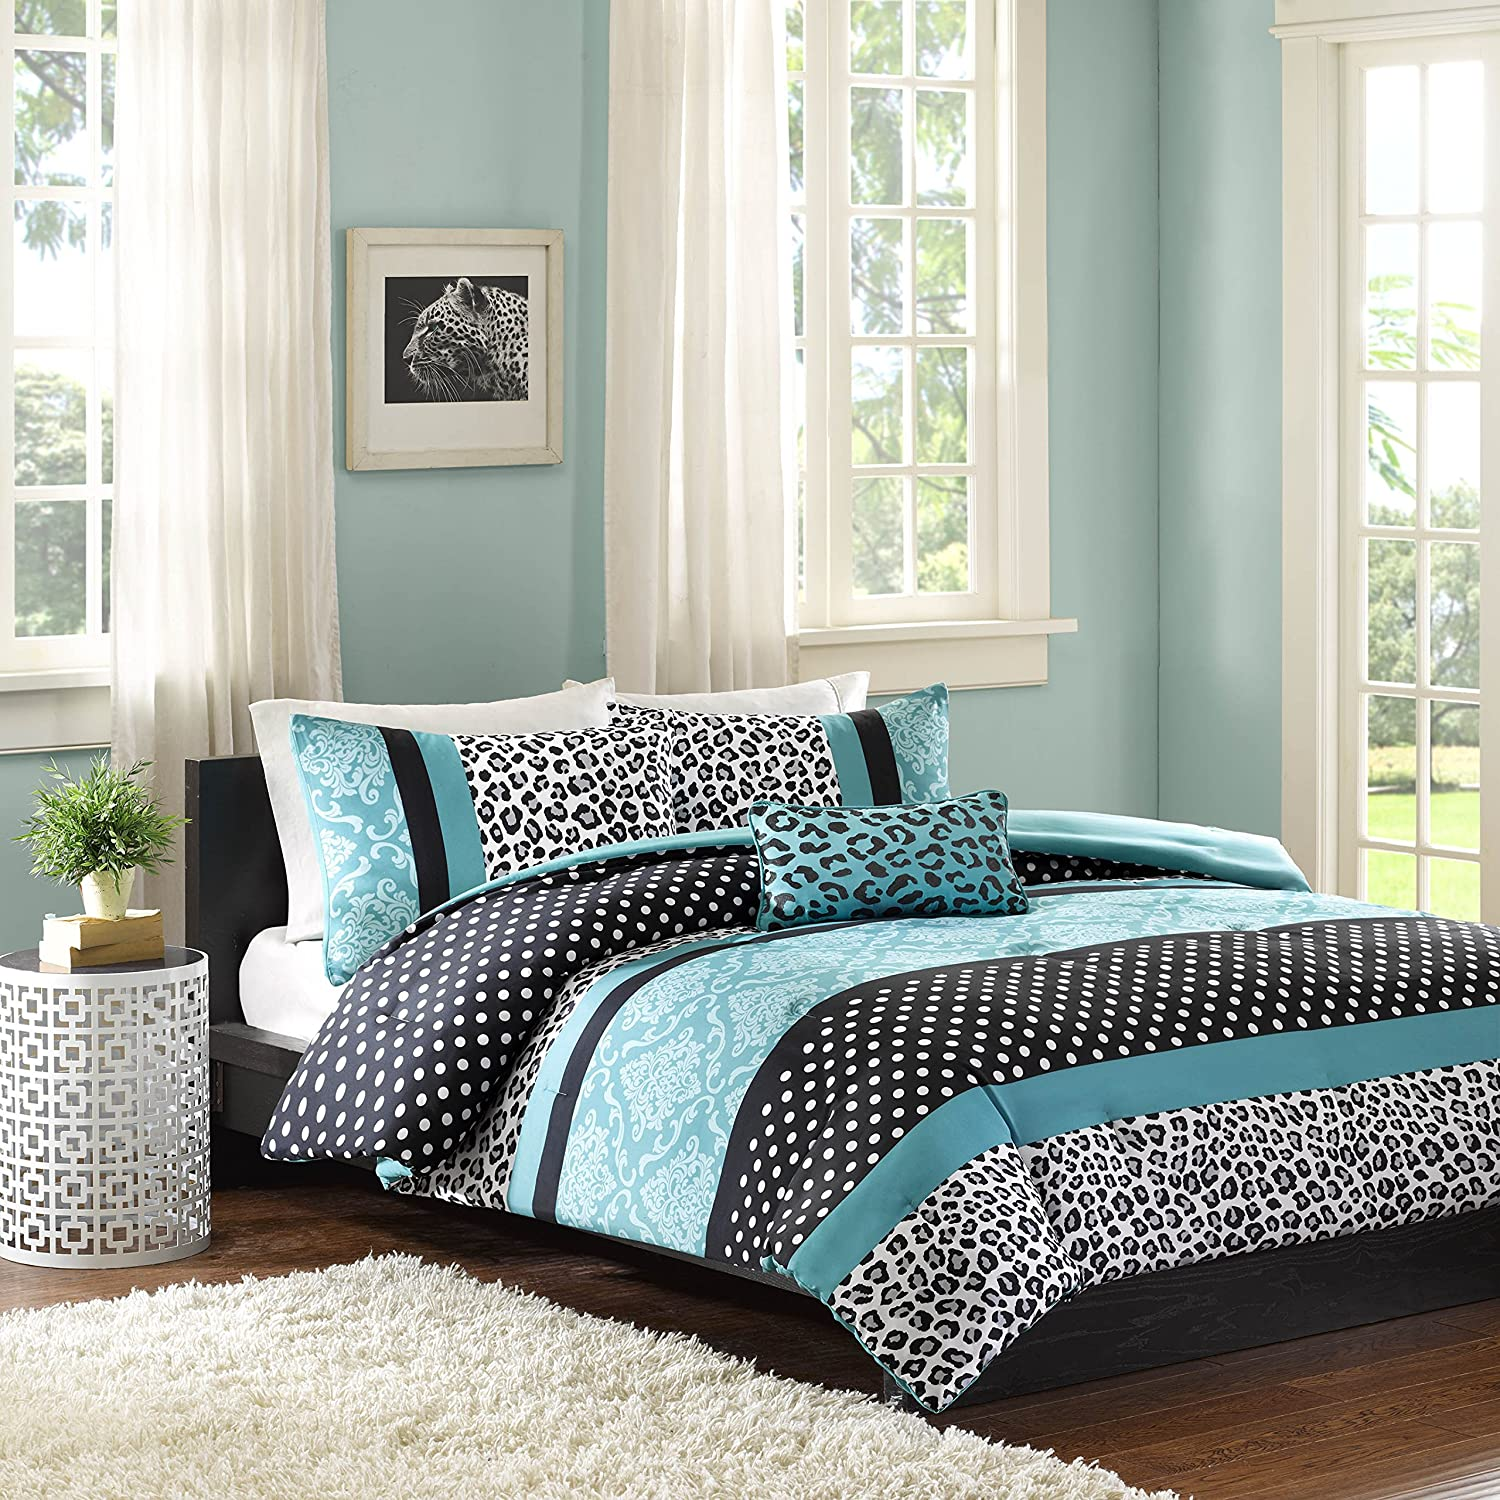 Amazon.com: Mi Zone Chloe Comforter Set, Full/ Queen, Teal: Home U0026 Kitchen